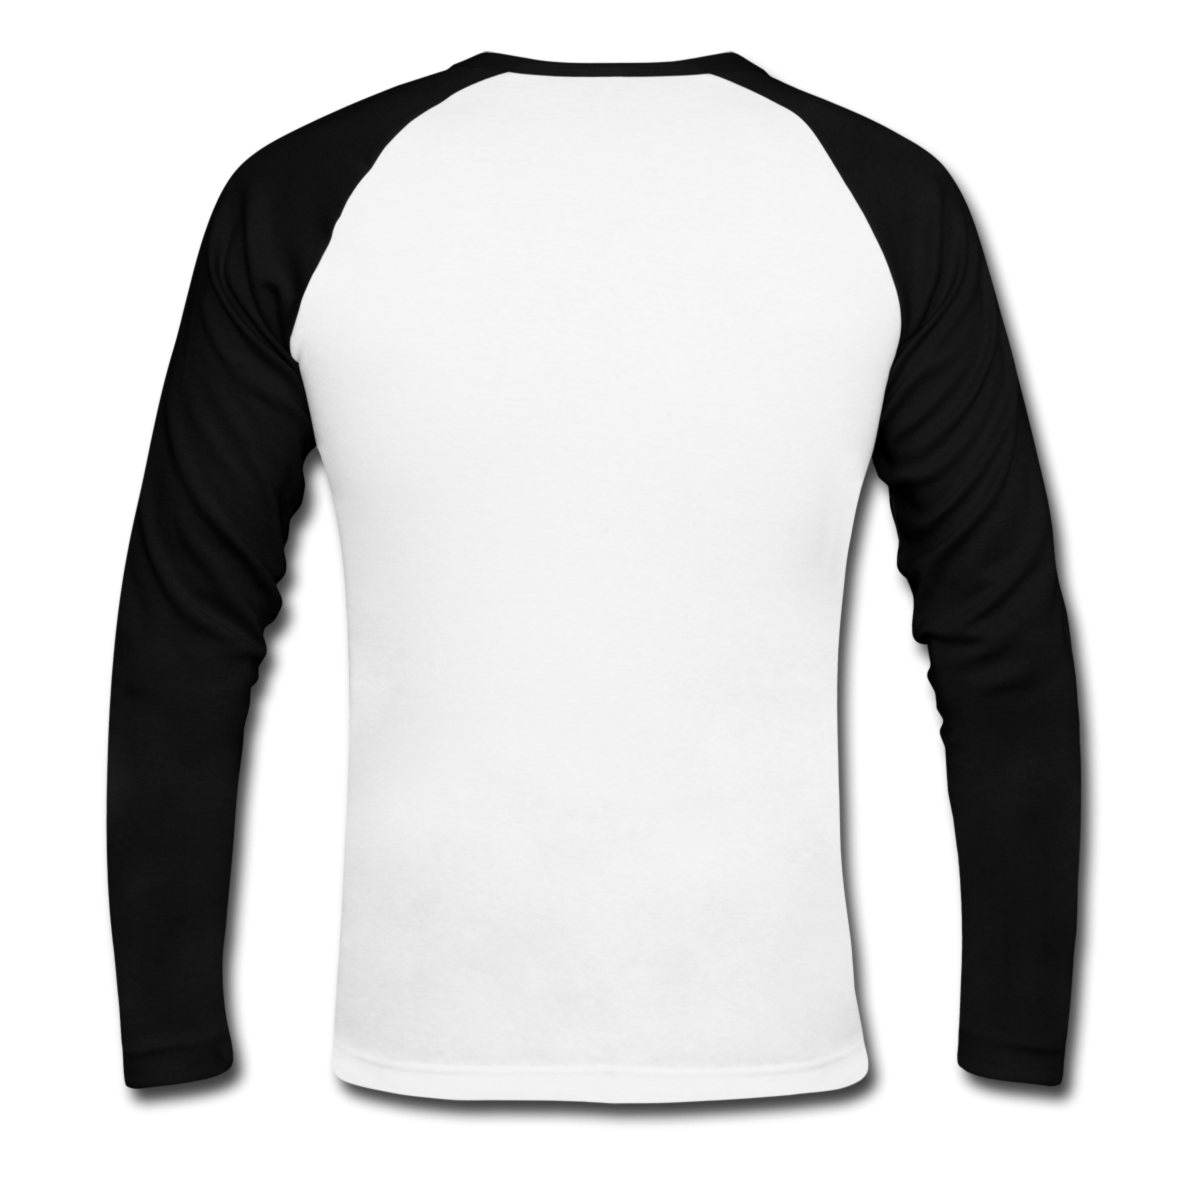 1200x1200 Blank T Shirt Transparent Png Pictures